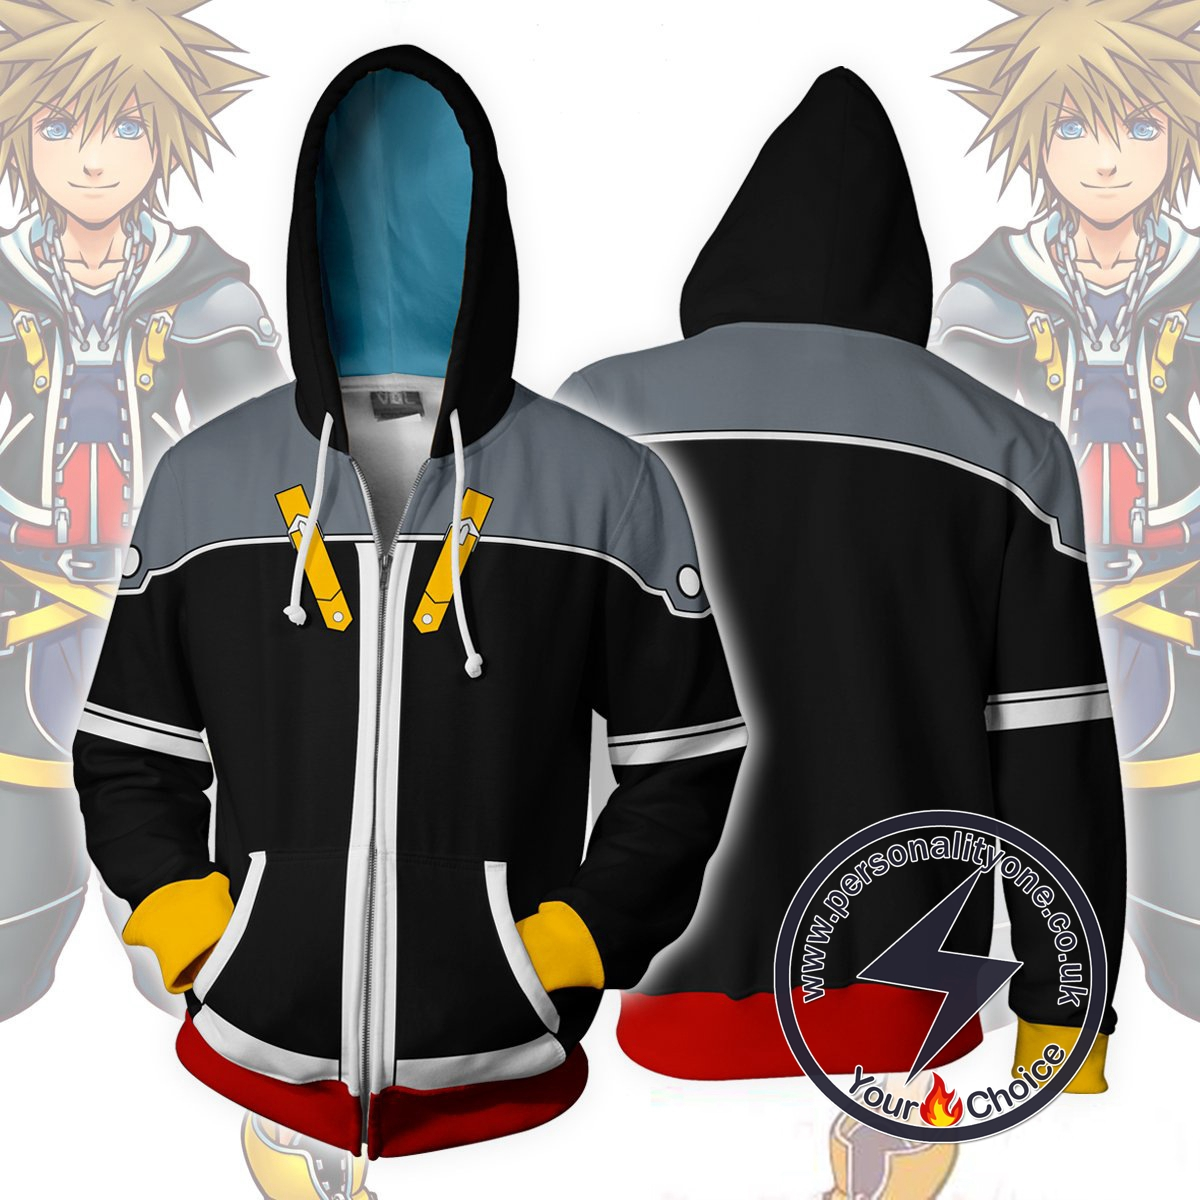 Kingdom Hearts Hoodie - Kingdom Hearts 2 Sora Black Jacket